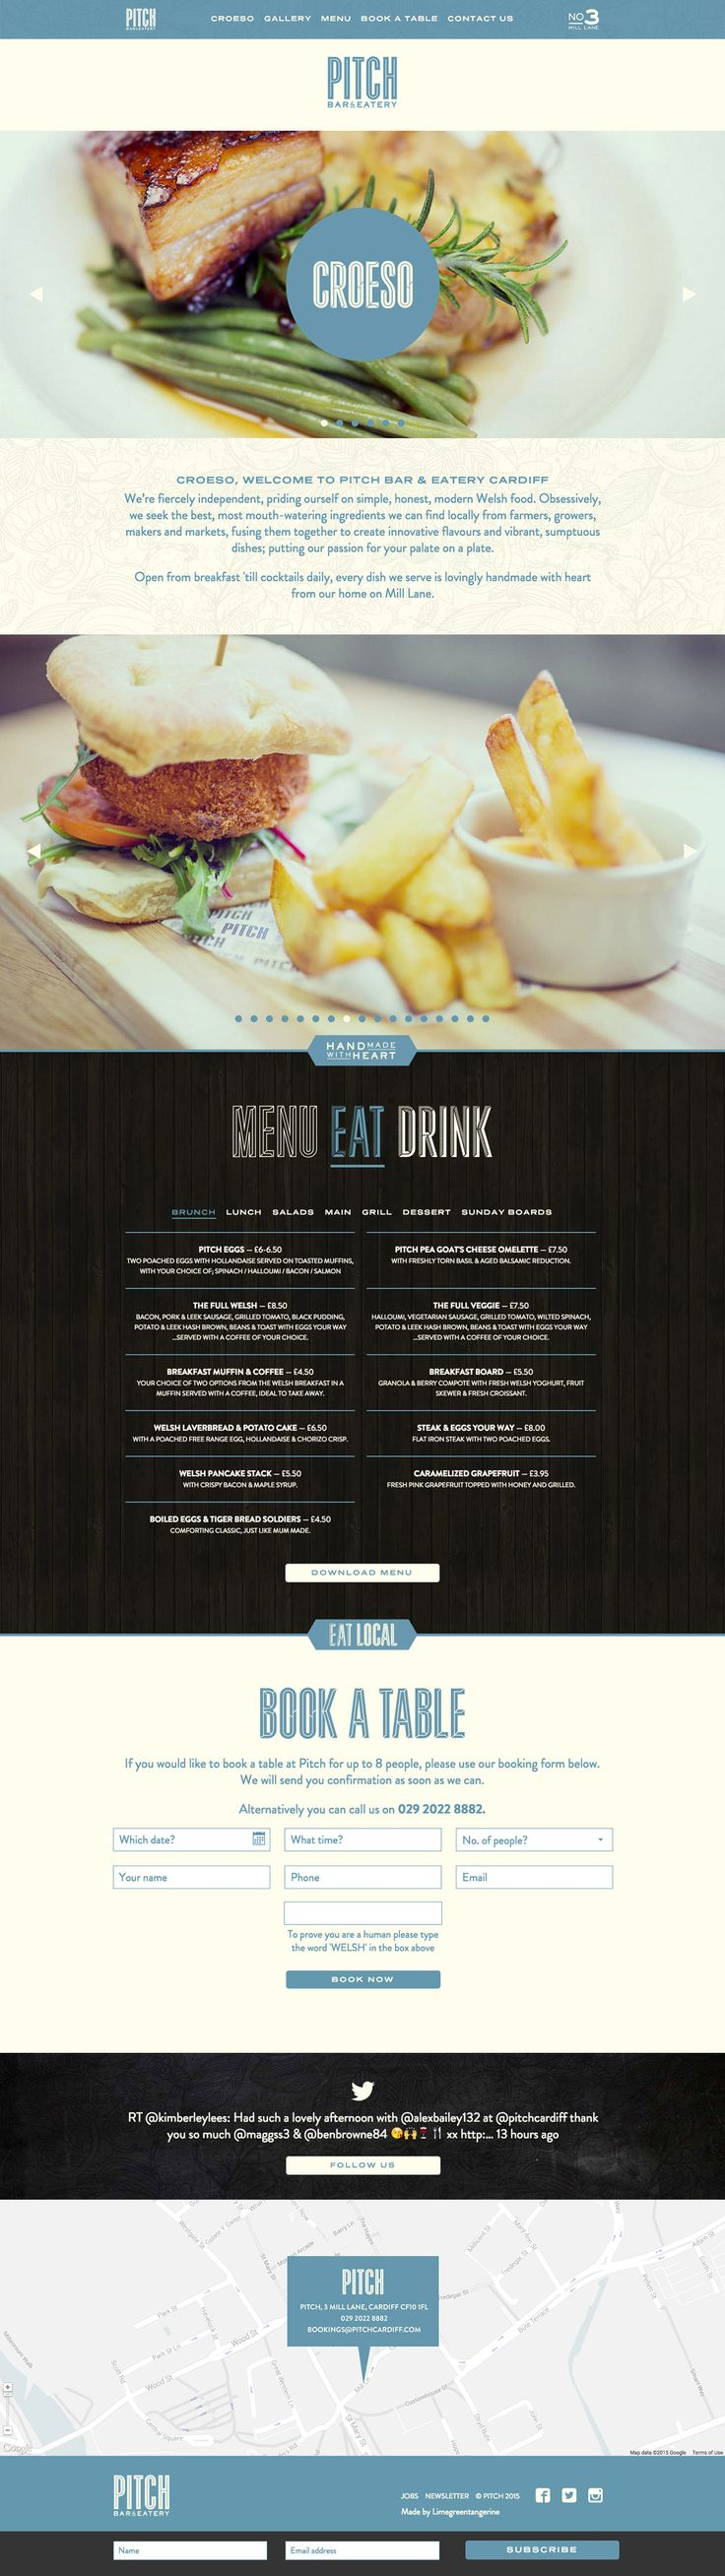 Responsive One Pager featuring big image slideshows for 'Pitch Bar & Eatery' - a new restaurant and cocktail bar in Cardiff.